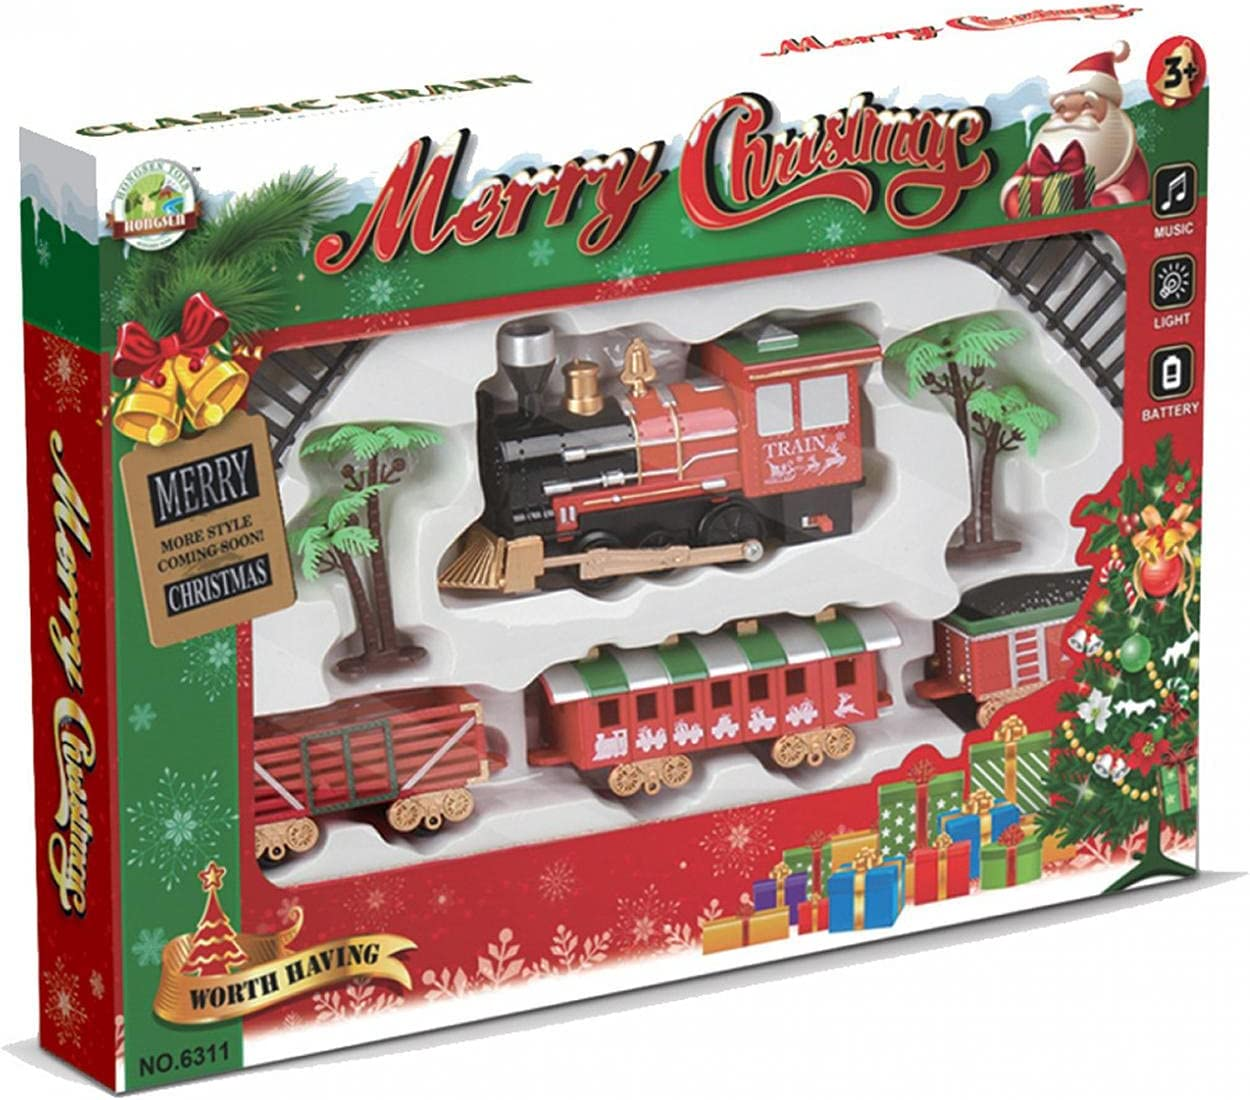 Mini Electric Train Fees free 35% OFF Set Toys for Boys and Christmas Girls